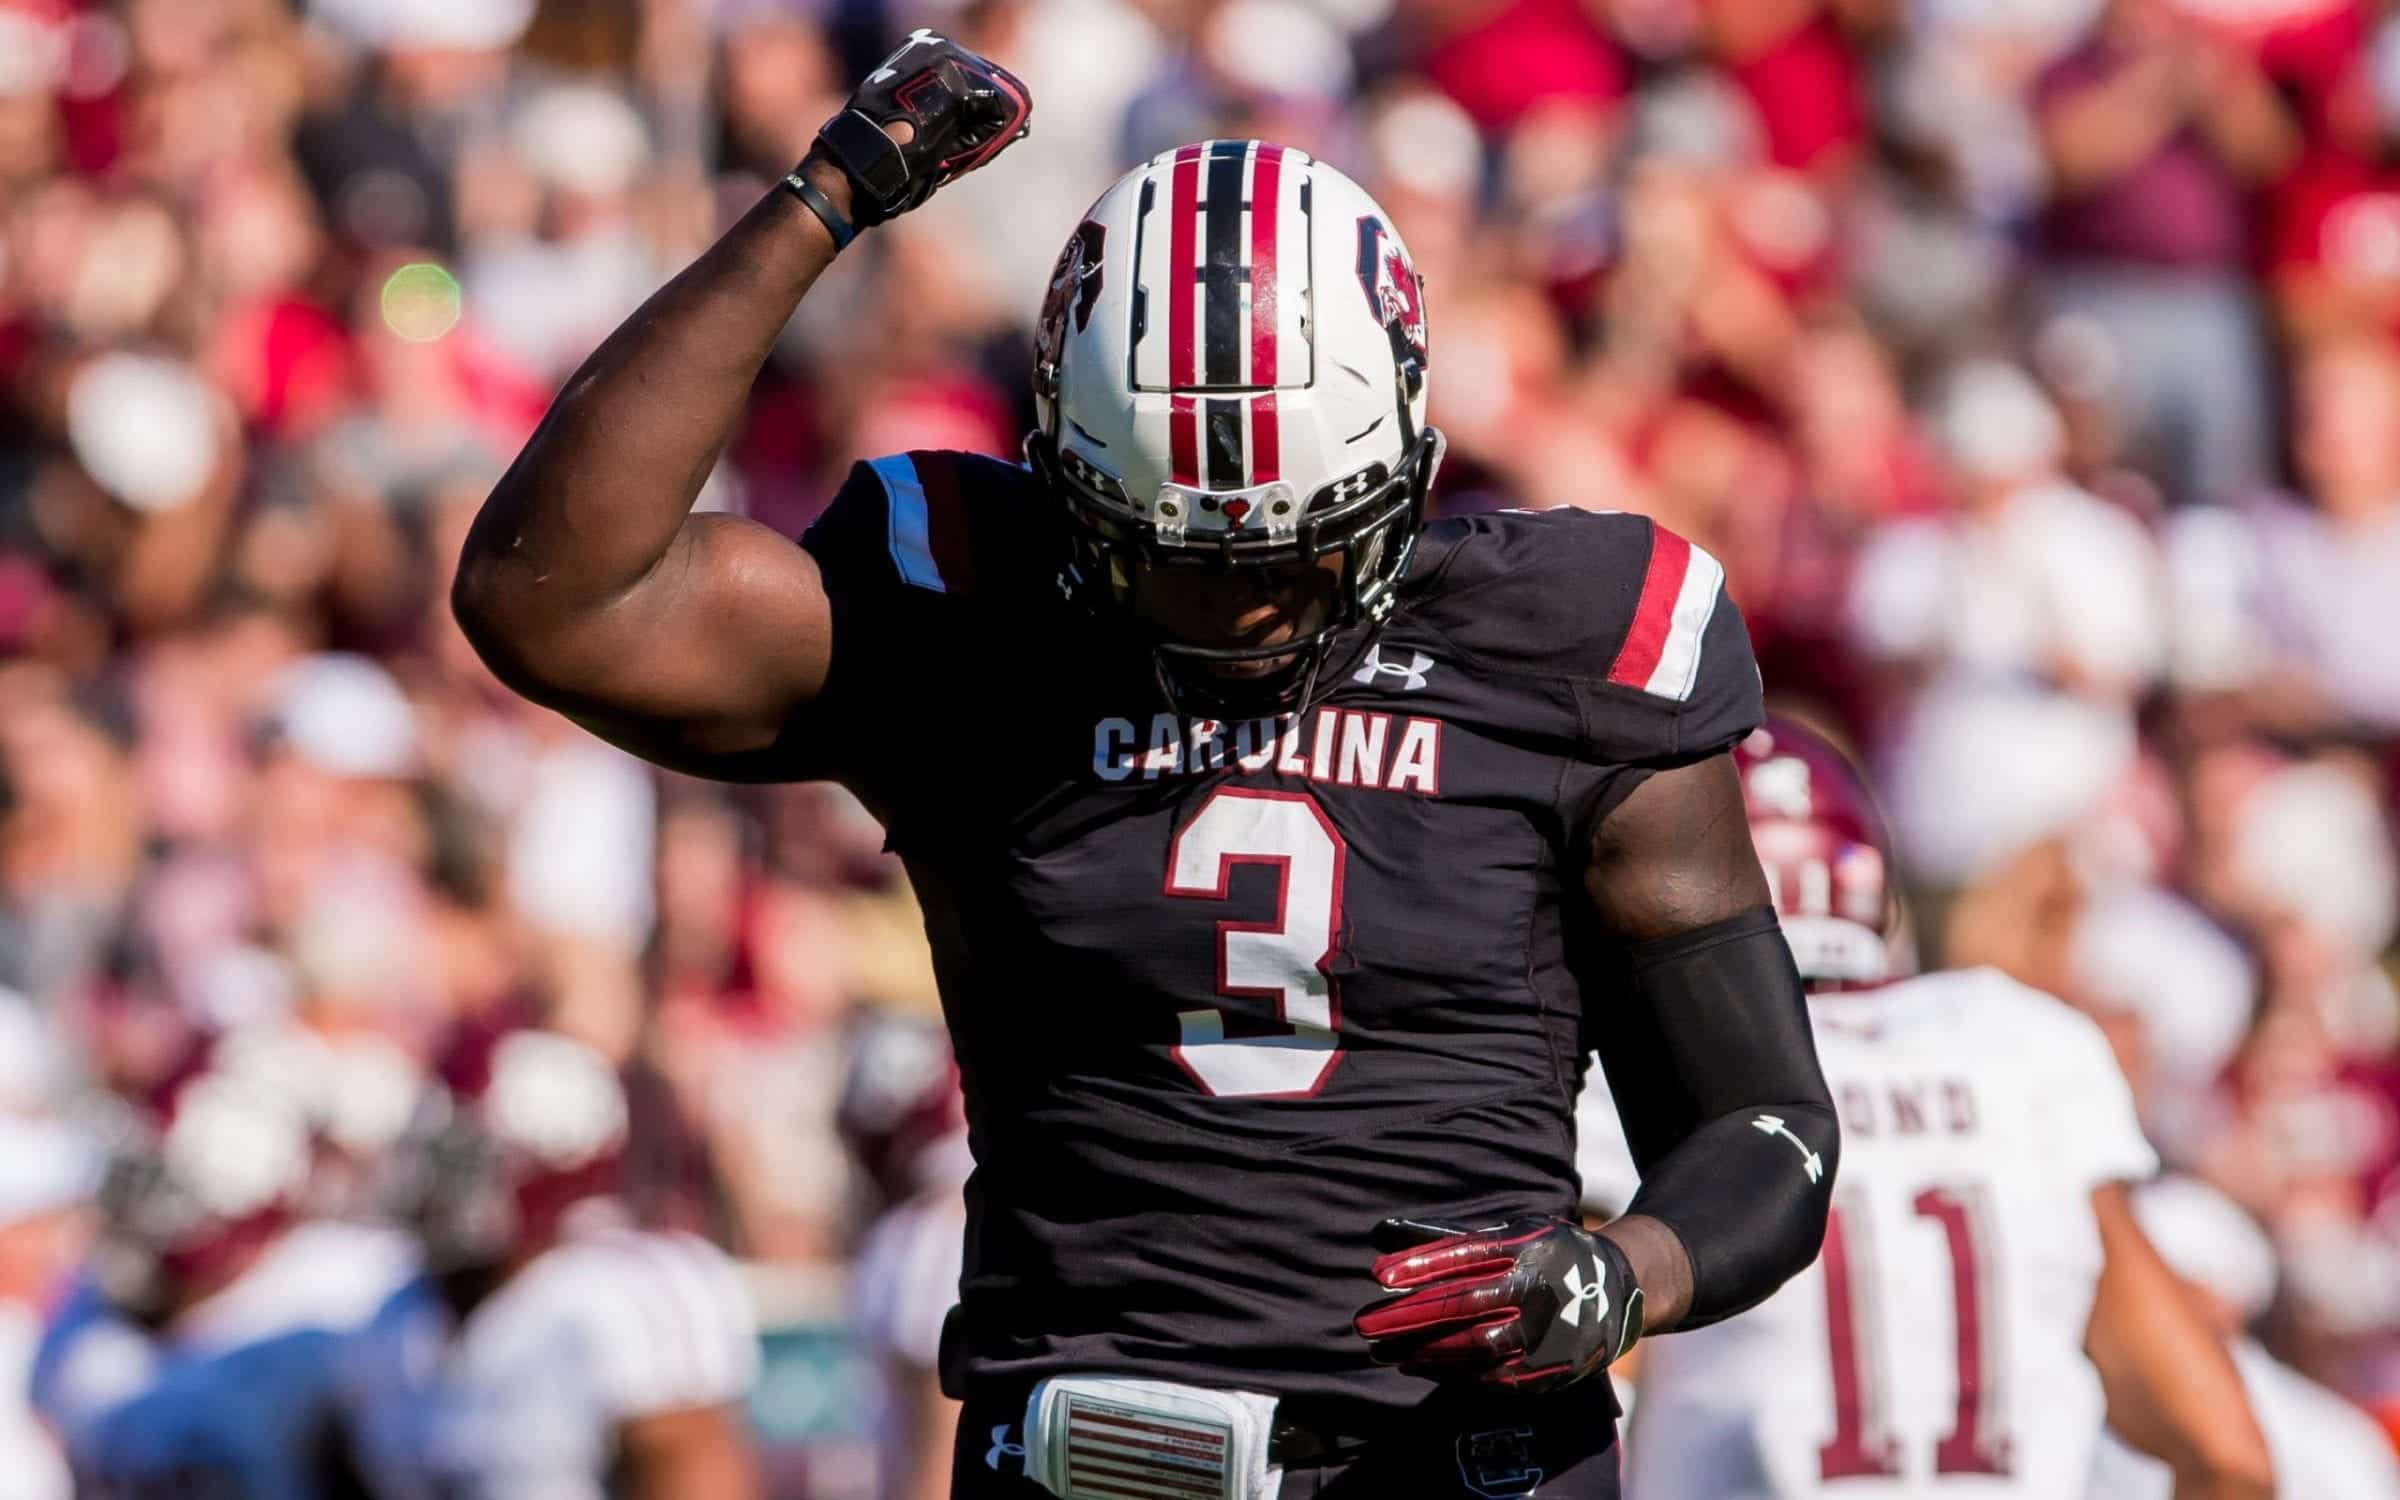 2020 NFL Draft: Are the Atlanta Falcons interested in trading up for Javon Kinlaw?